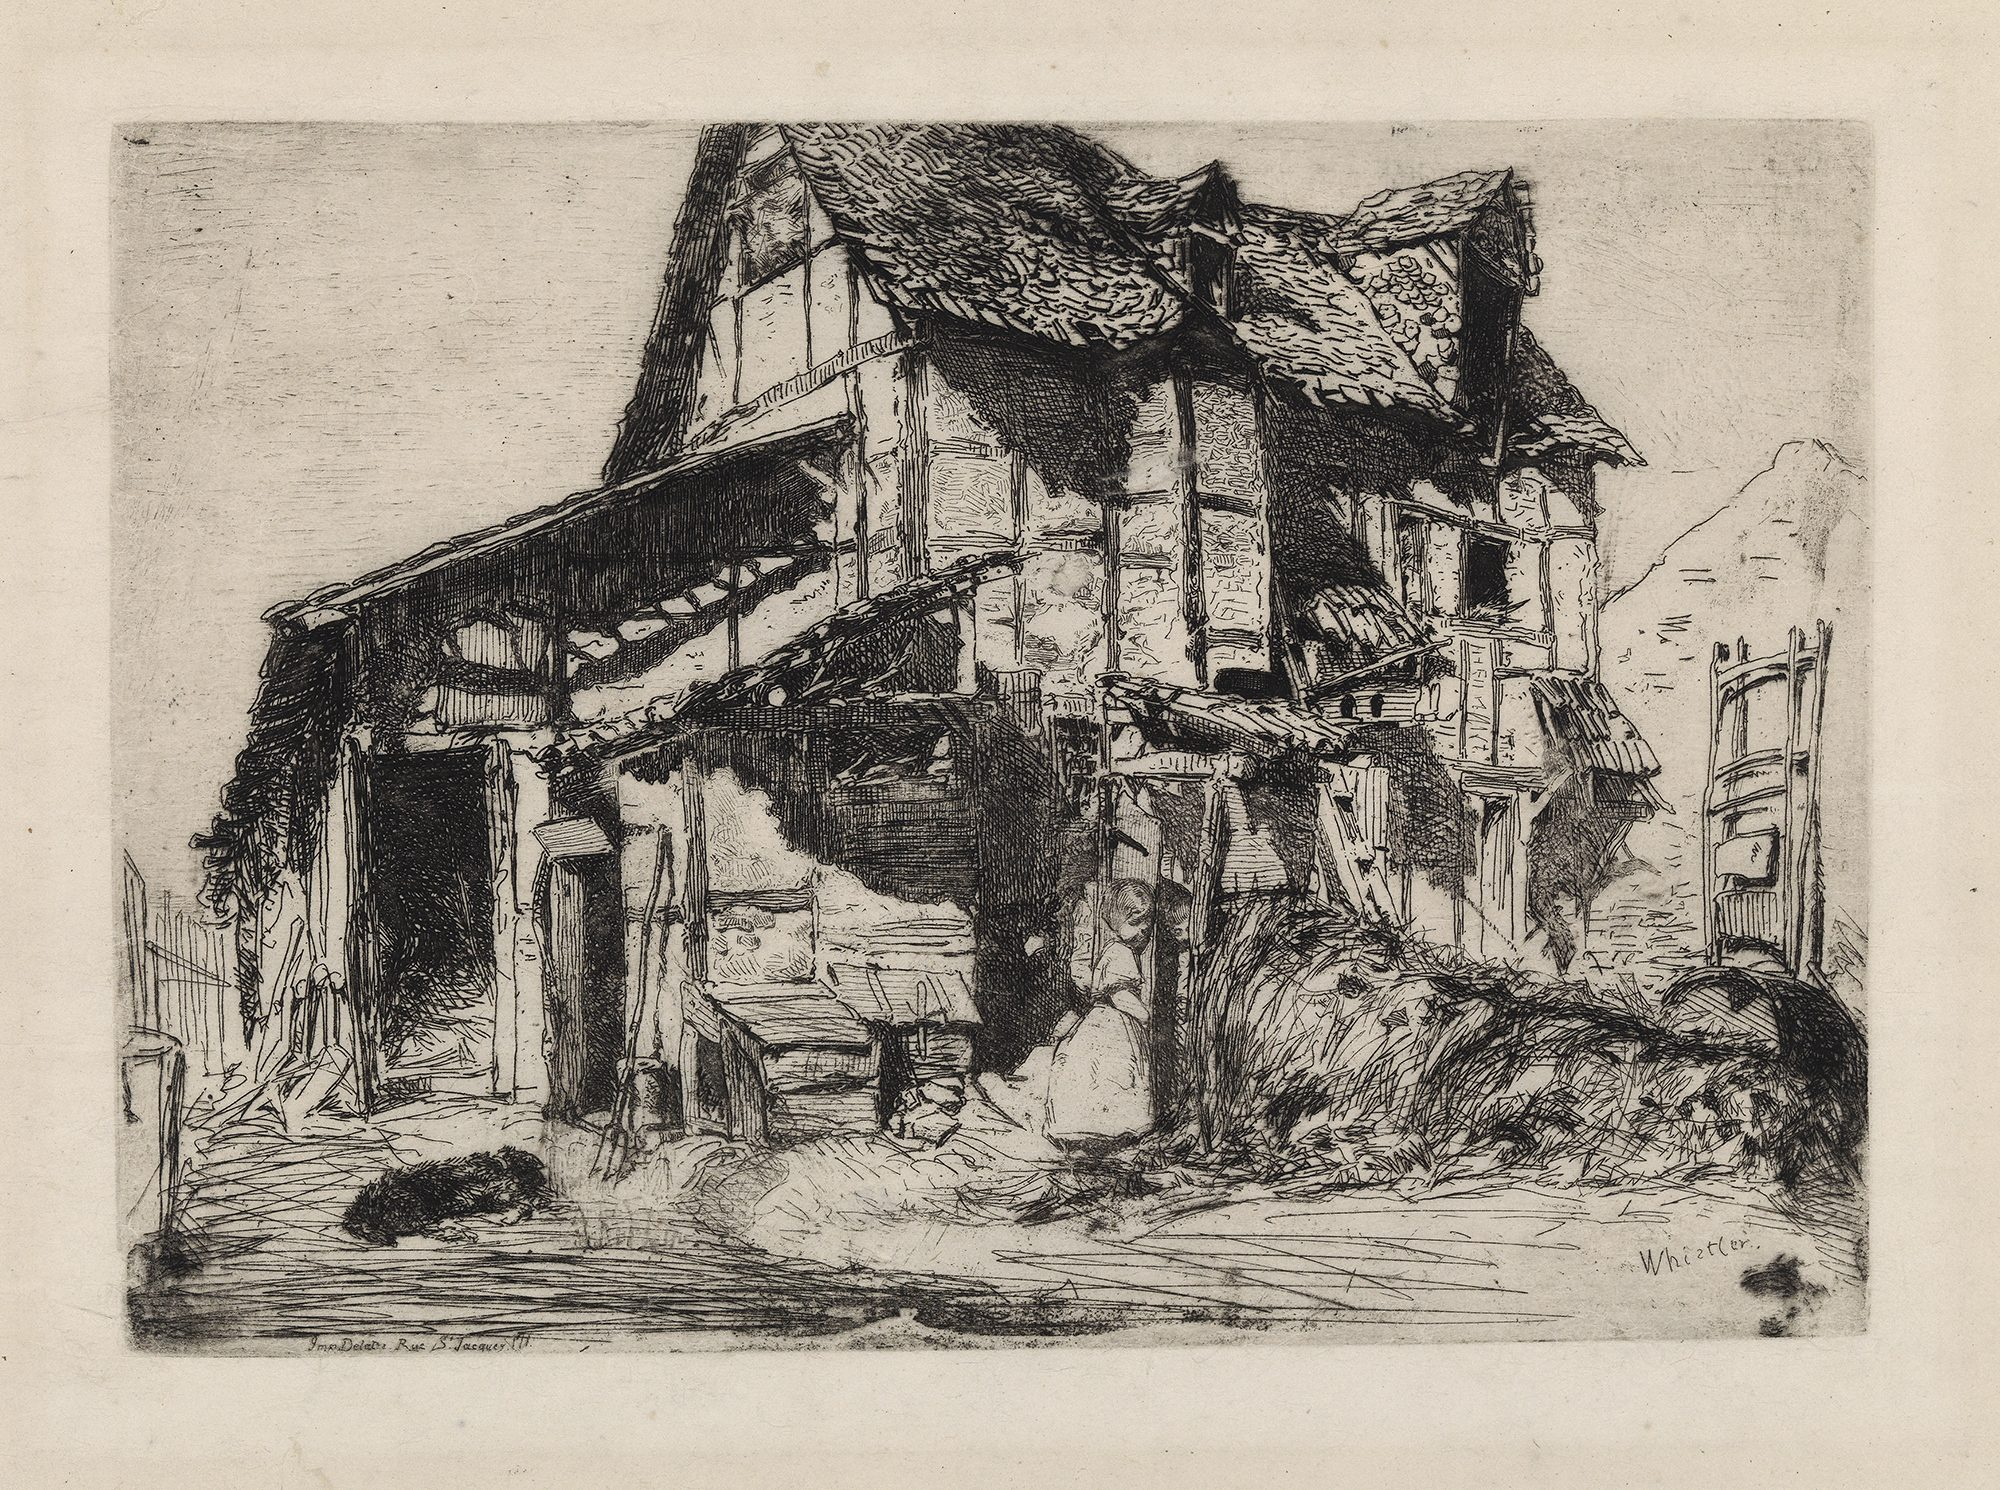 James Abbott McNeill Whistler, Unsafe Tenement (From